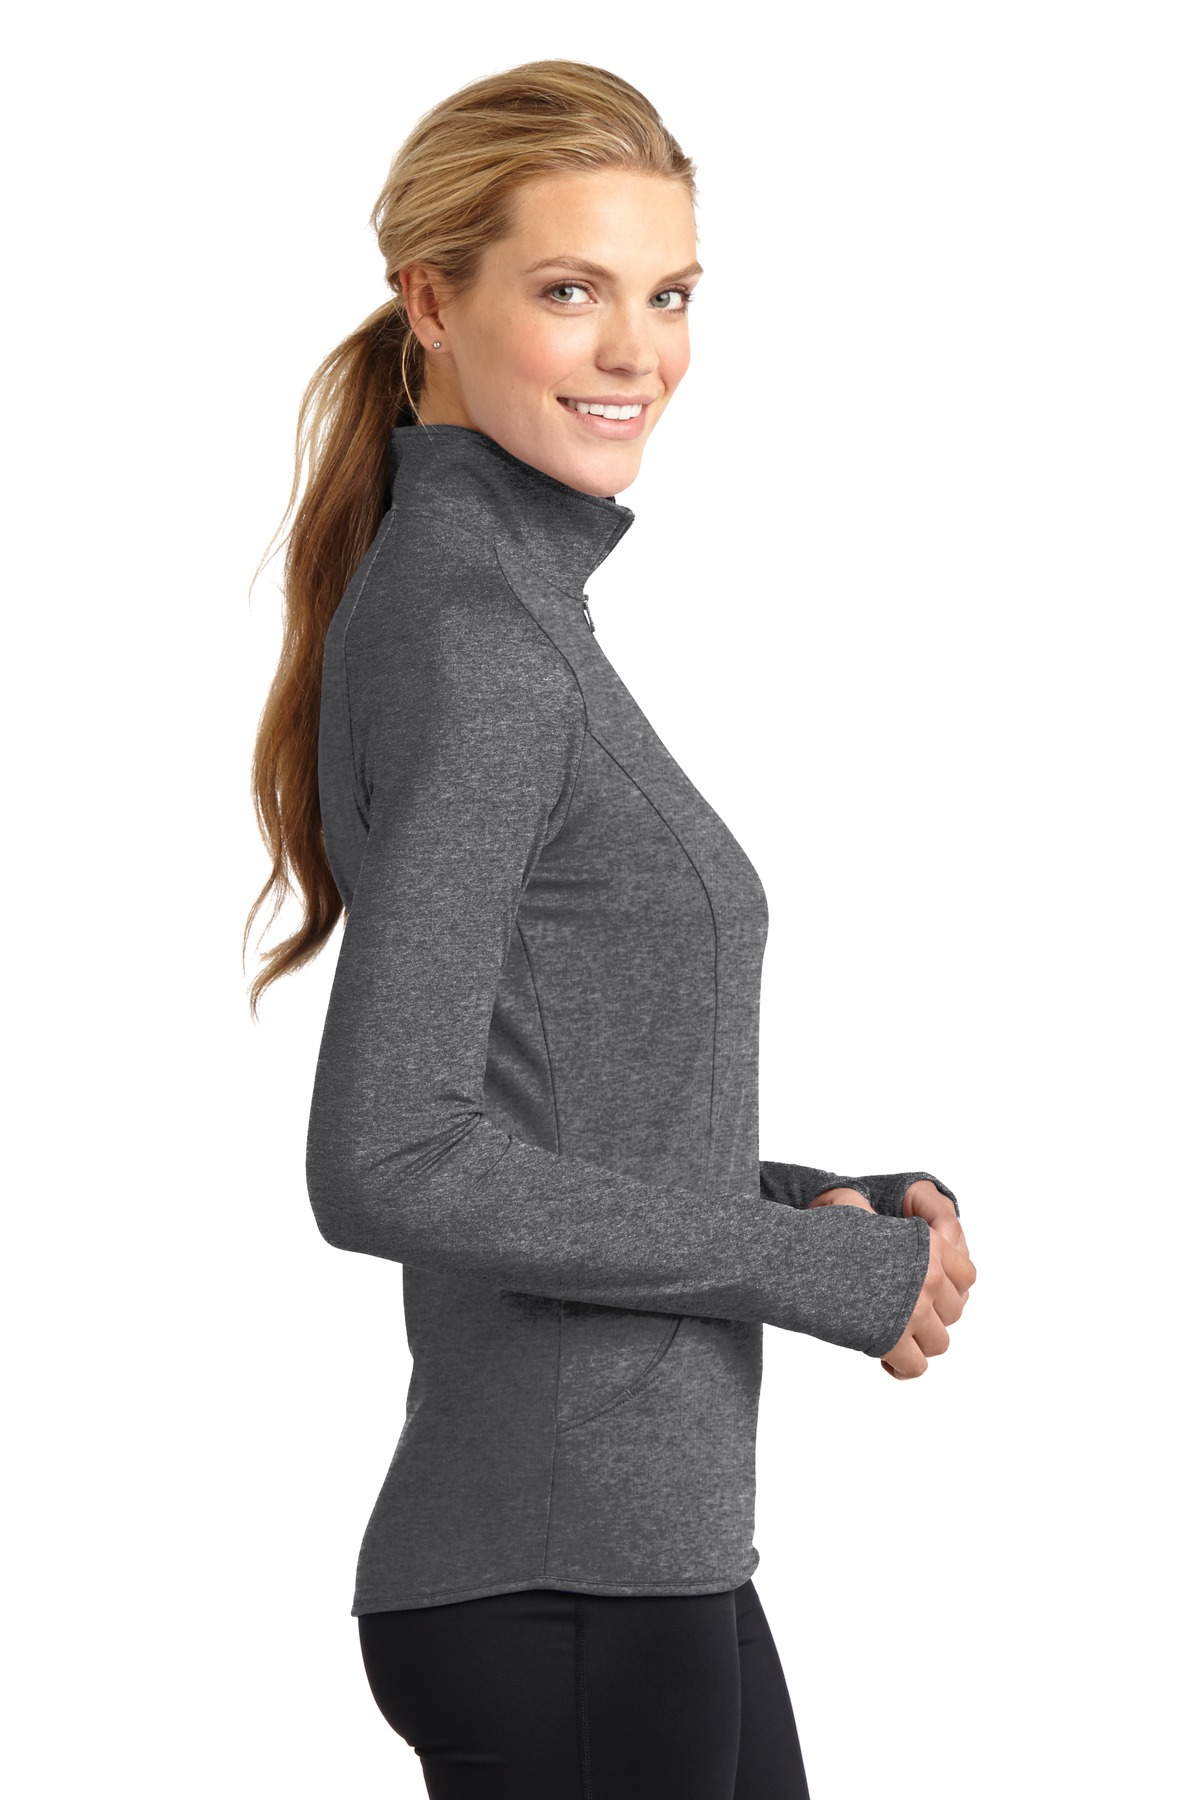 Ladies Sport Stretch 1/2 Zip Pullover RPAC - RCL2340-RPAC